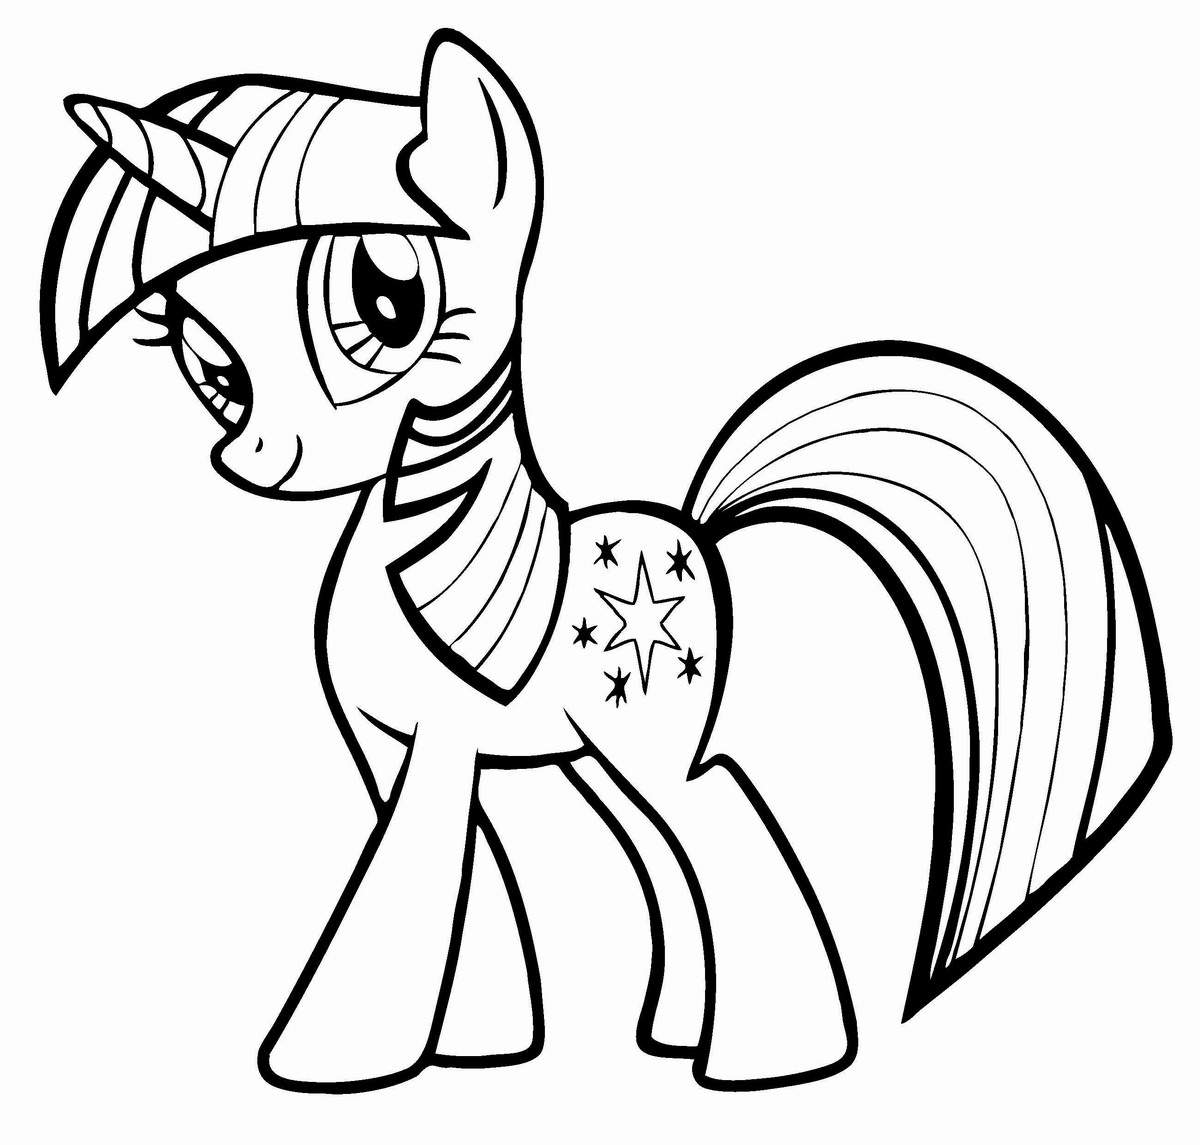 coloring pages of my little pony my little pony coloring pages download and print my pony pages my of little coloring